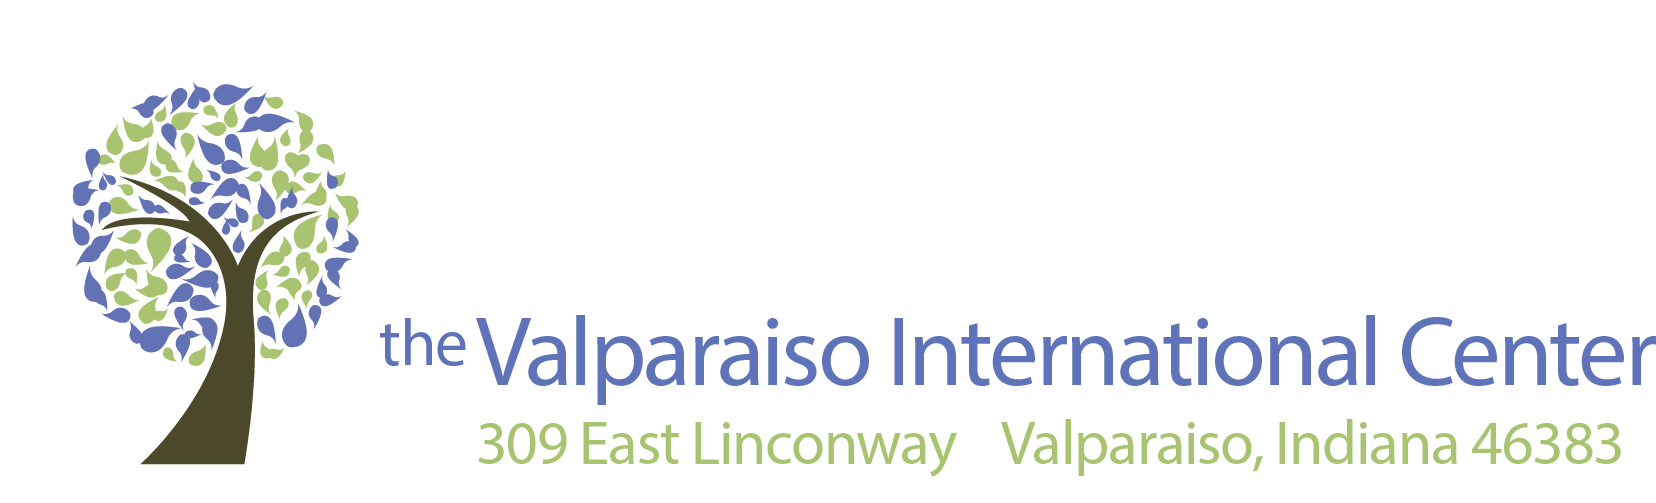 Valparaiso International Center